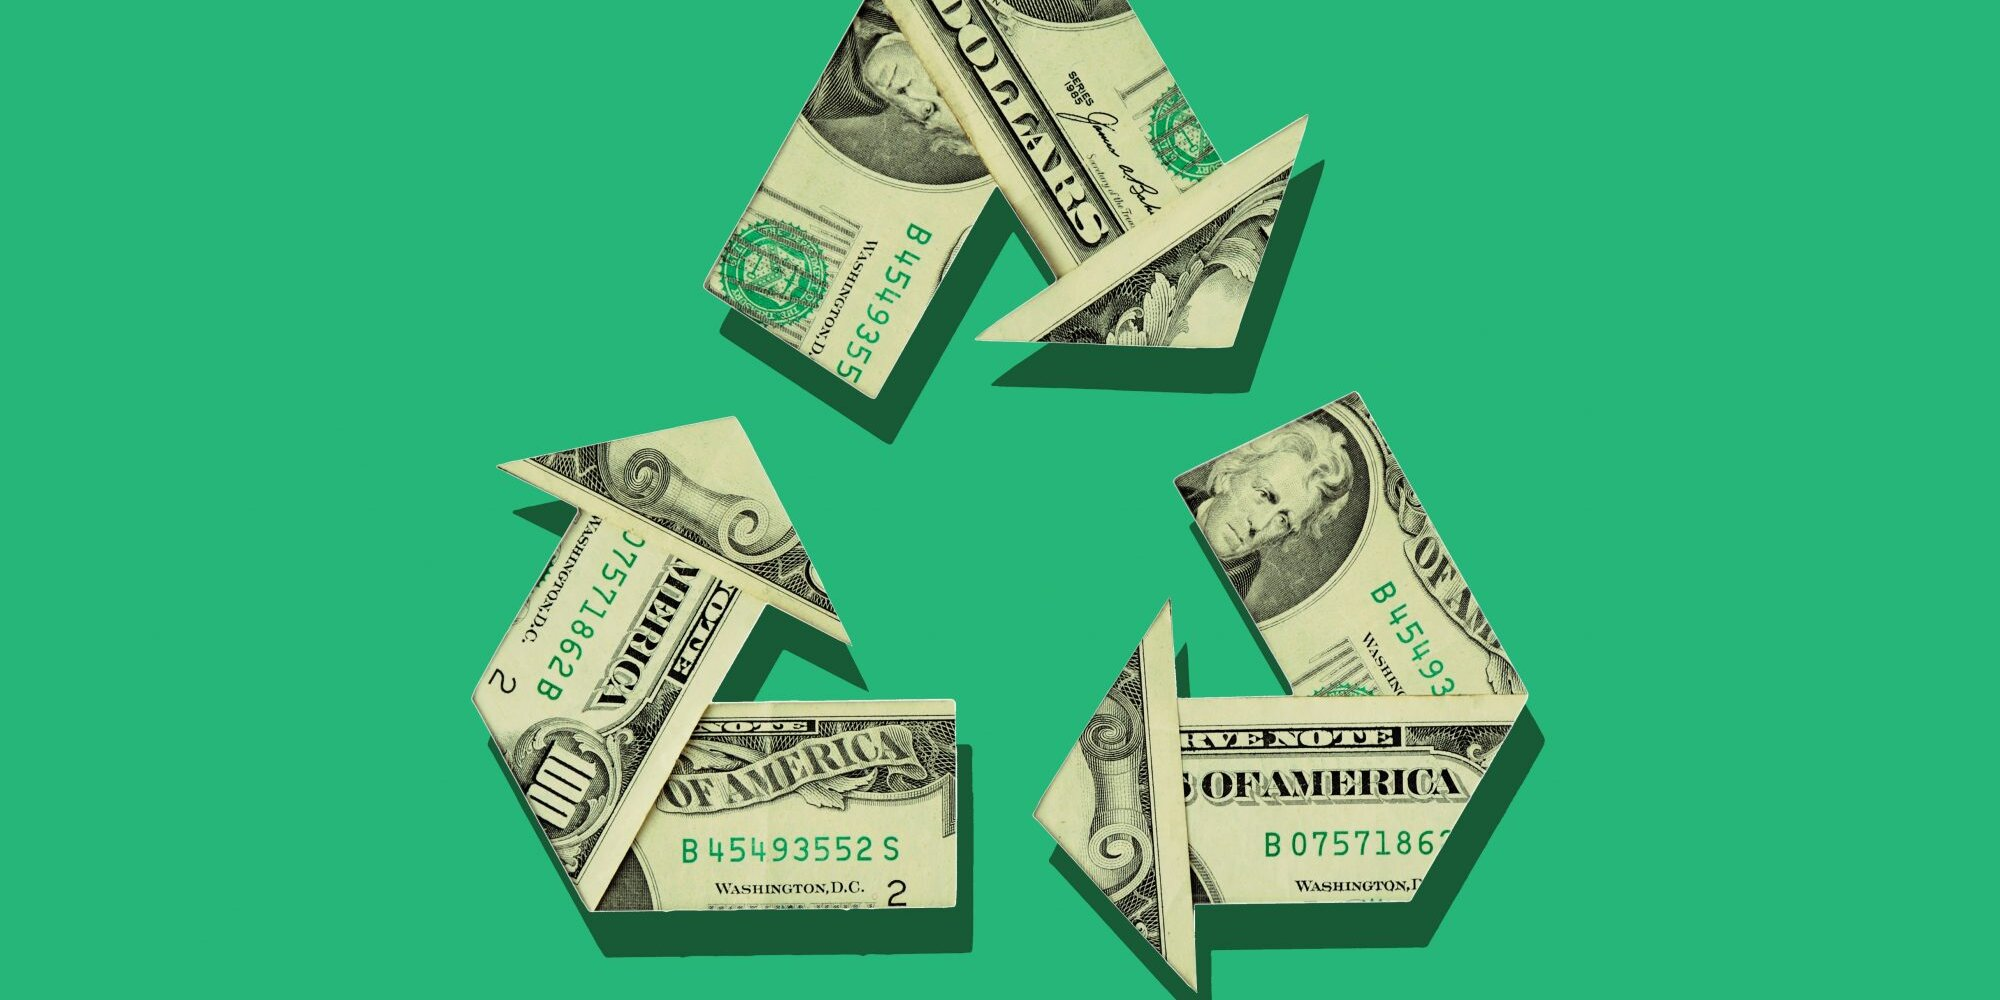 How to Earn Cash-Back Rewards by Recycling Your Old Clothing and Electronics